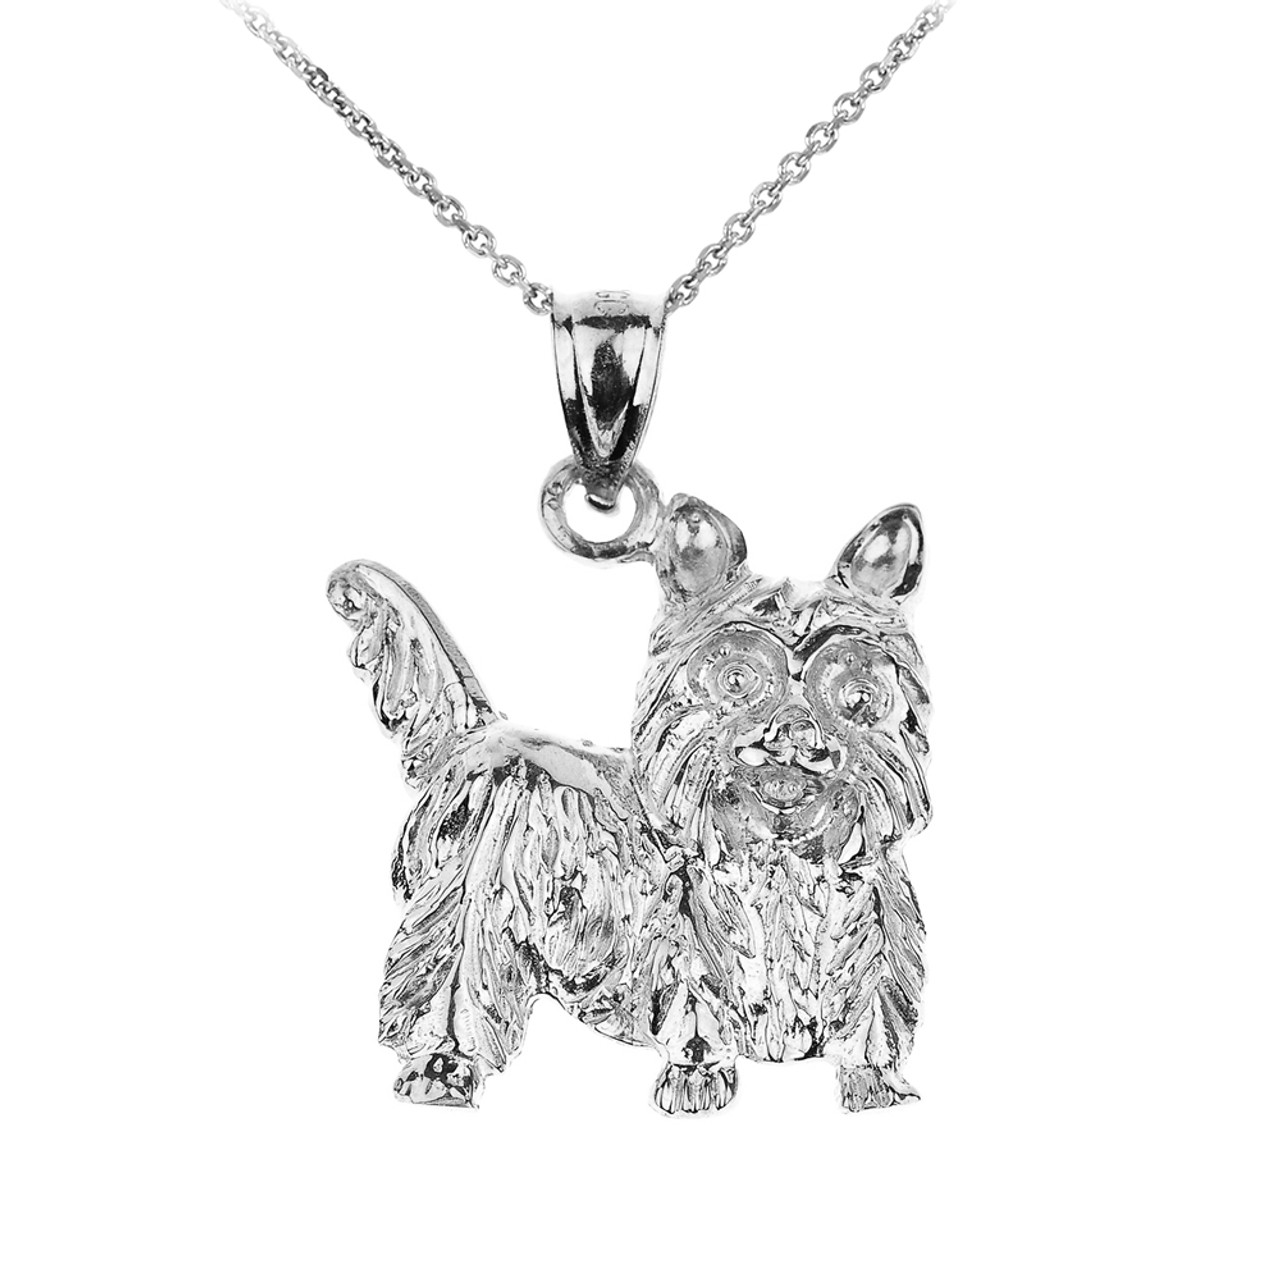 products velden green van bibi pendant necklace rhino der img animal